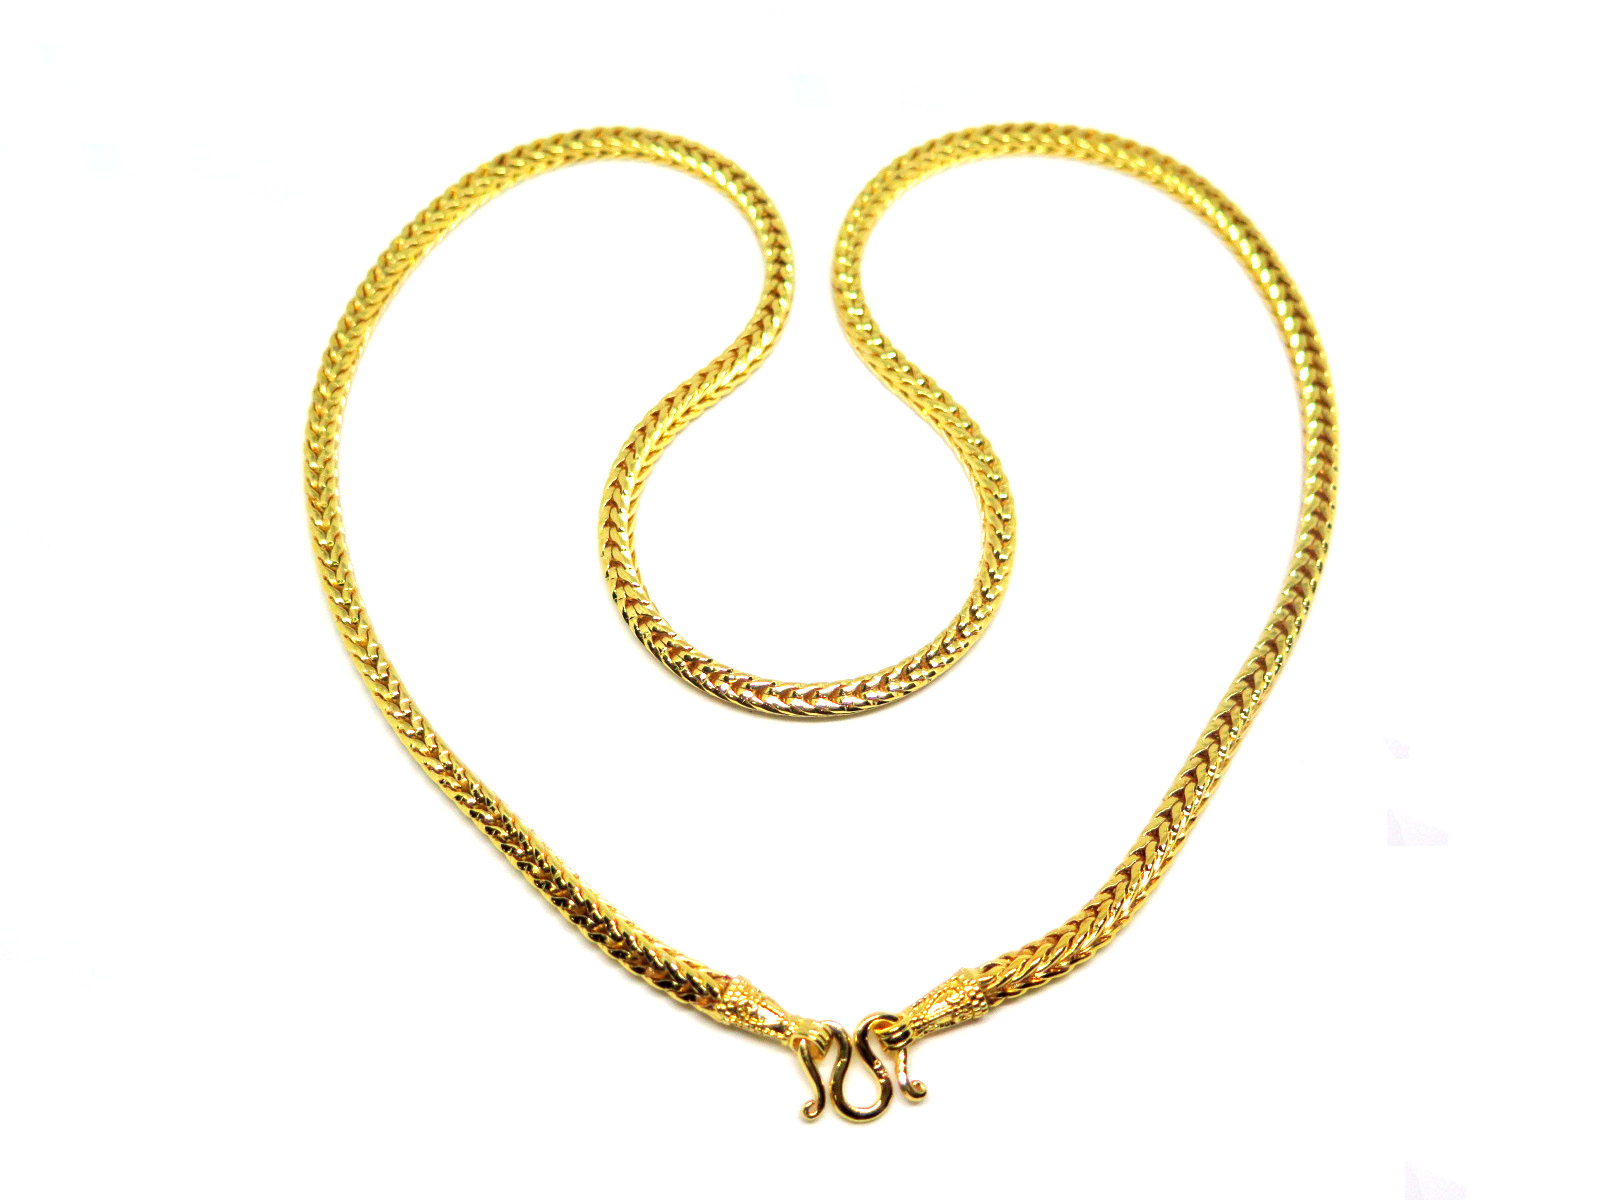 c50fcd55d7452 New gold necklace high quality jewelry handmade yellow gold JPG 1600x1200 24k  gold necklace